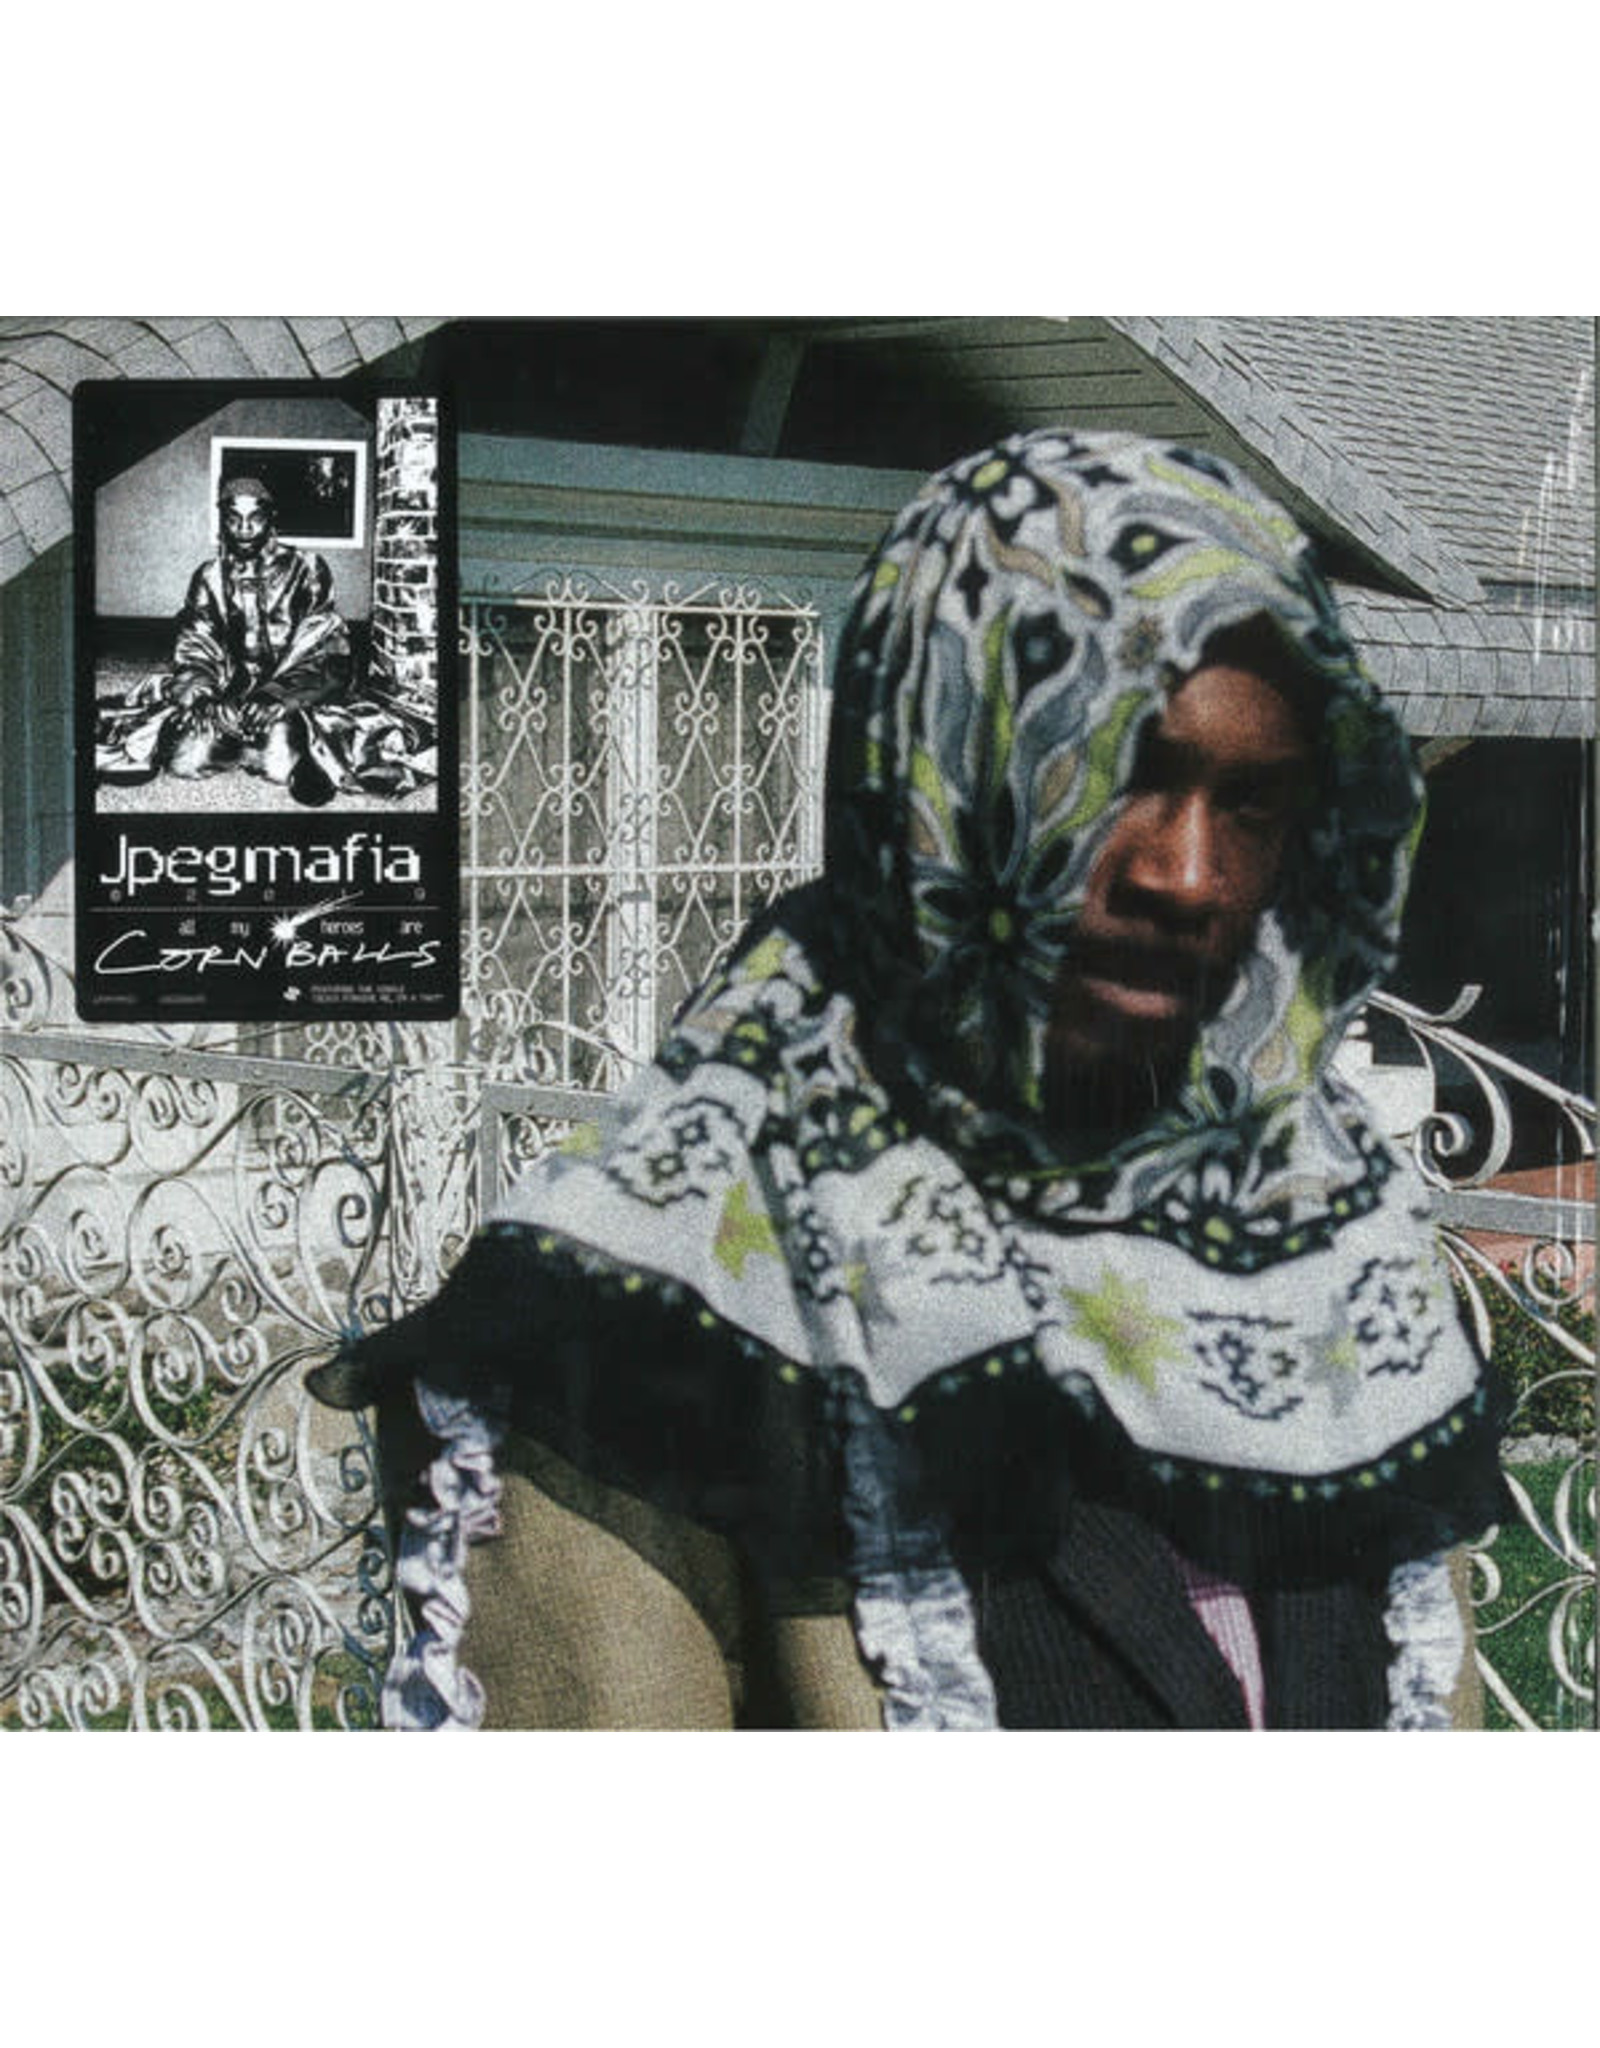 Jpegmafia - All My Heroes Are Corn Balls LP